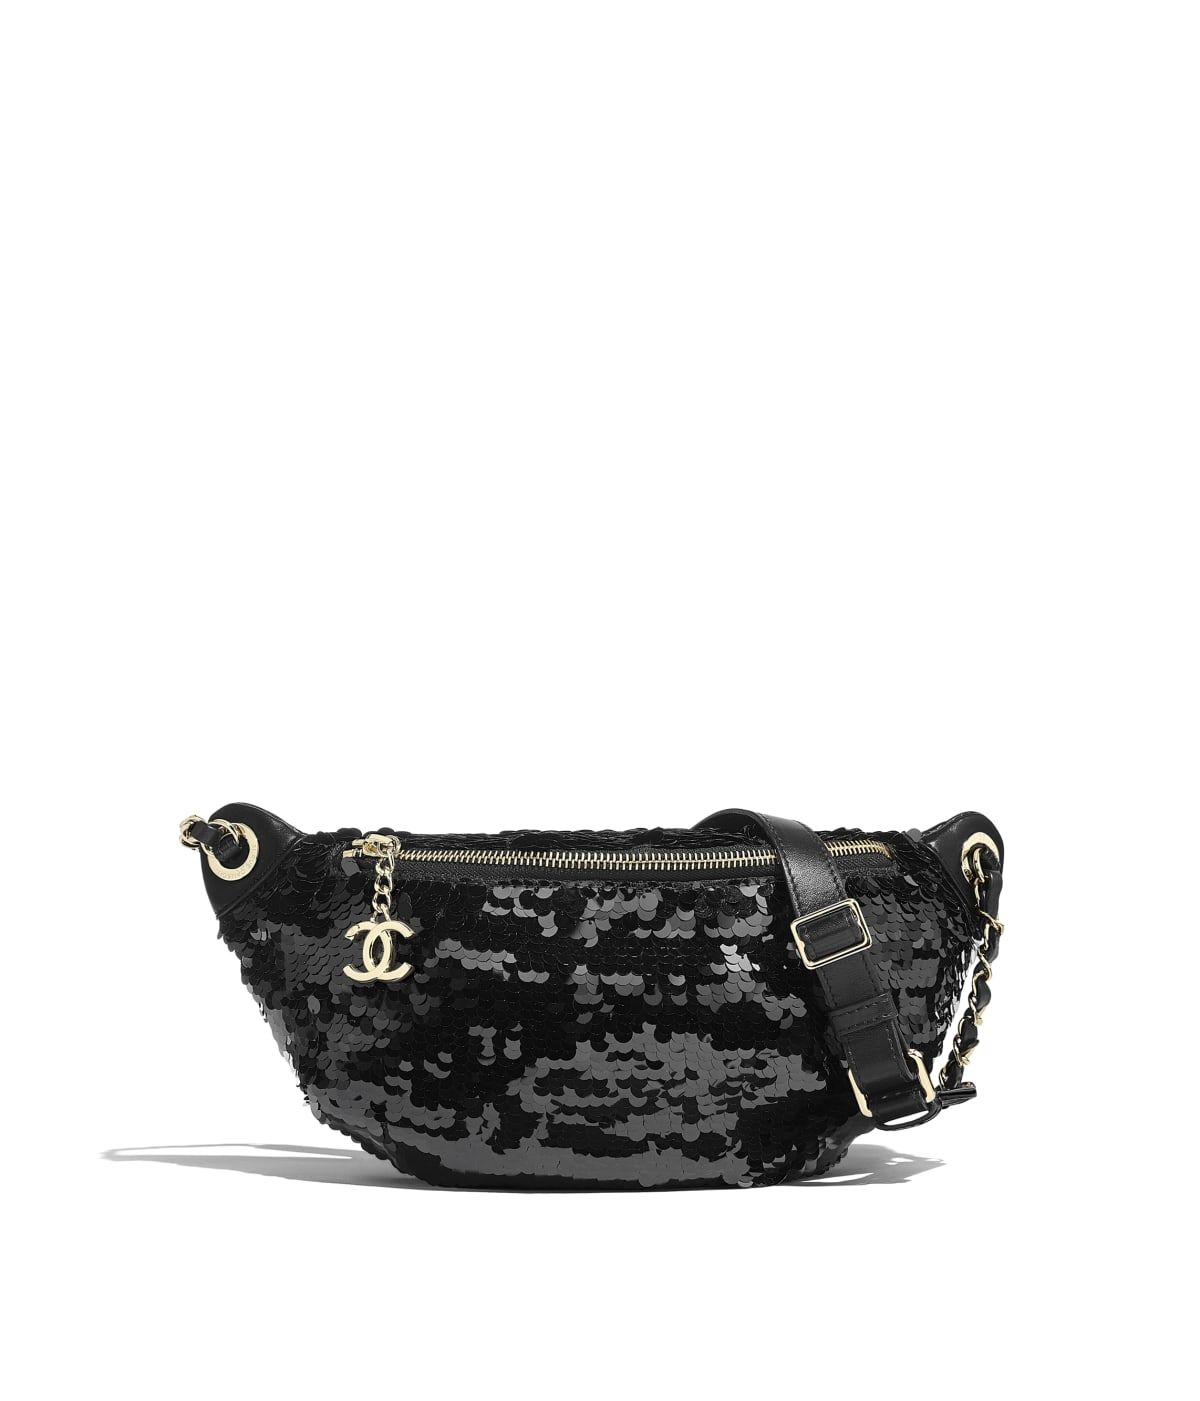 3952963a9aa7 Handbags of the Spring-Summer 2019 Pre-Collection CHANEL Fashion collection  : Waist Bag, sequins, lambskin & gold-tone metal, black on the CHANEL  official ...